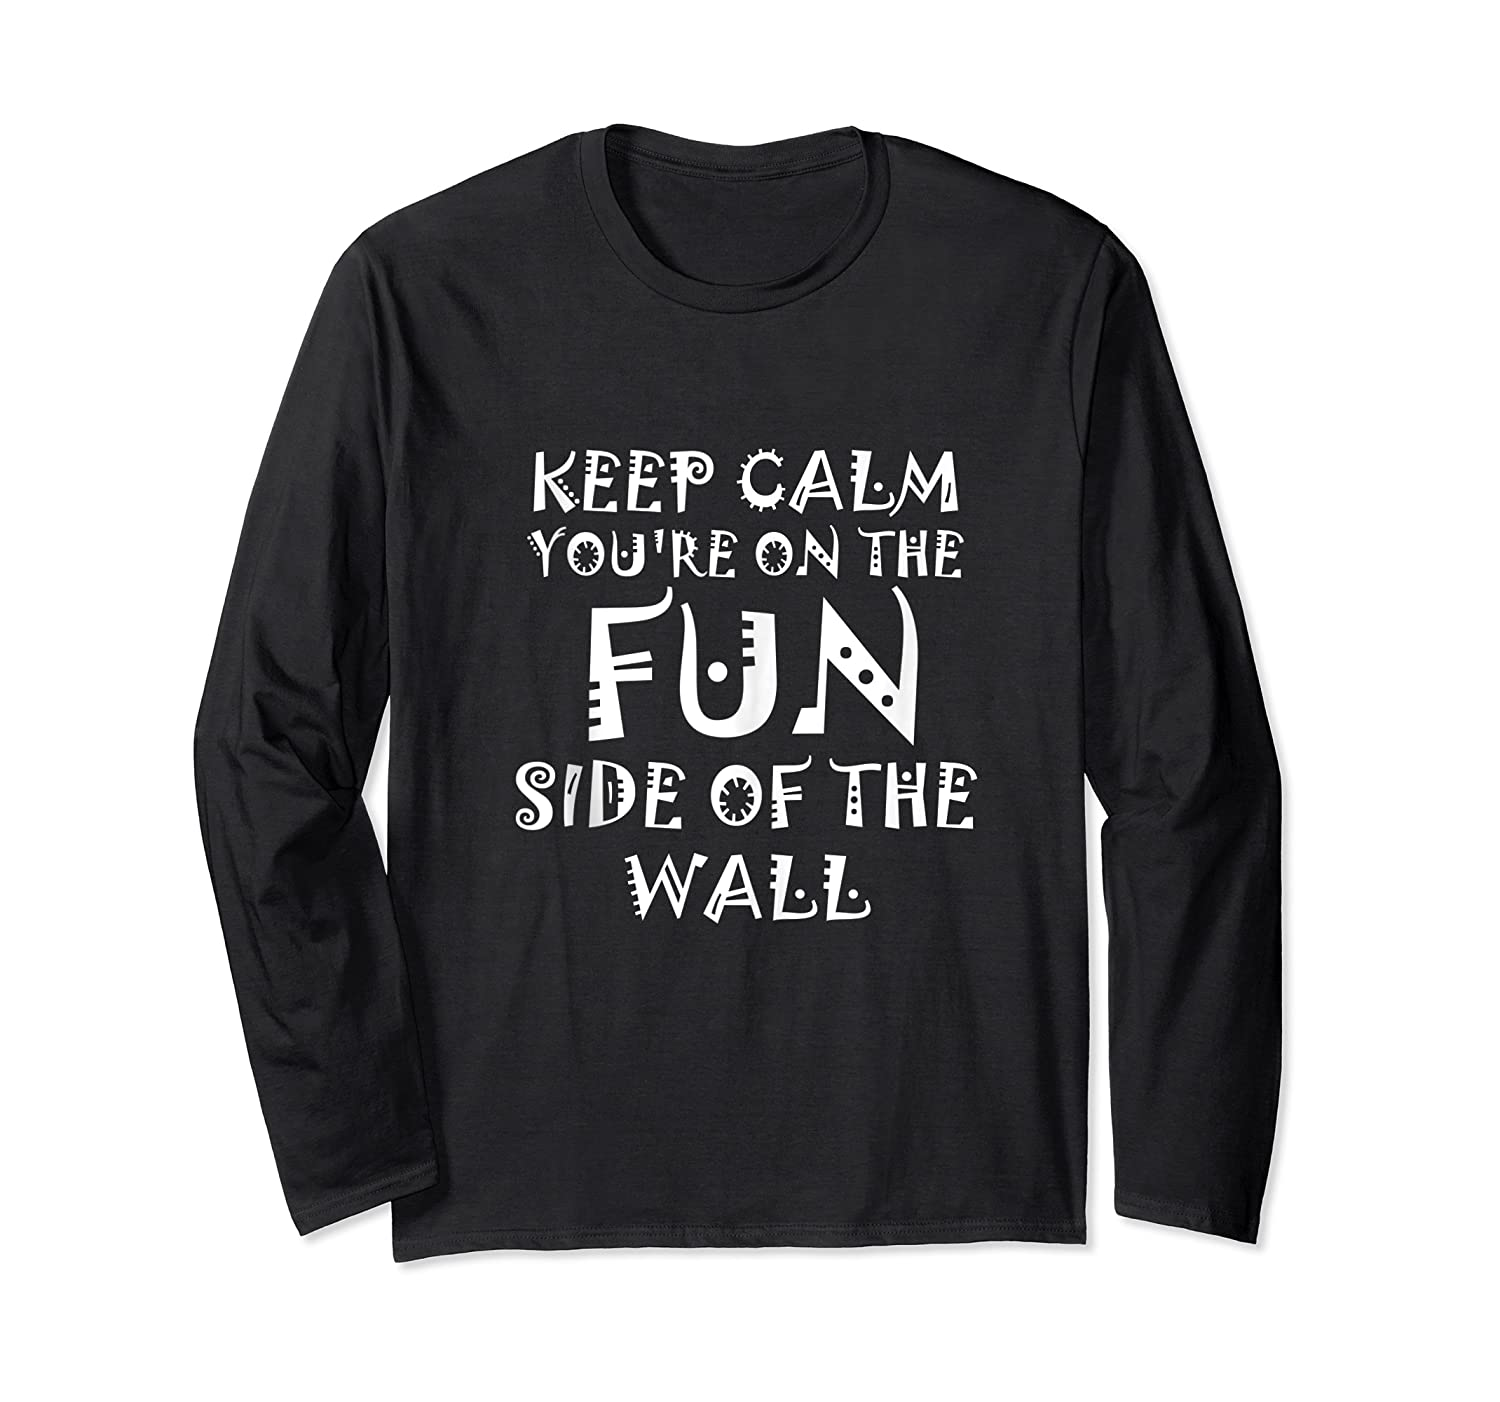 Keep Calm You Re On The Fun Side Of The Wall Funny Mexican Tank Top Shirts Long Sleeve T-shirt